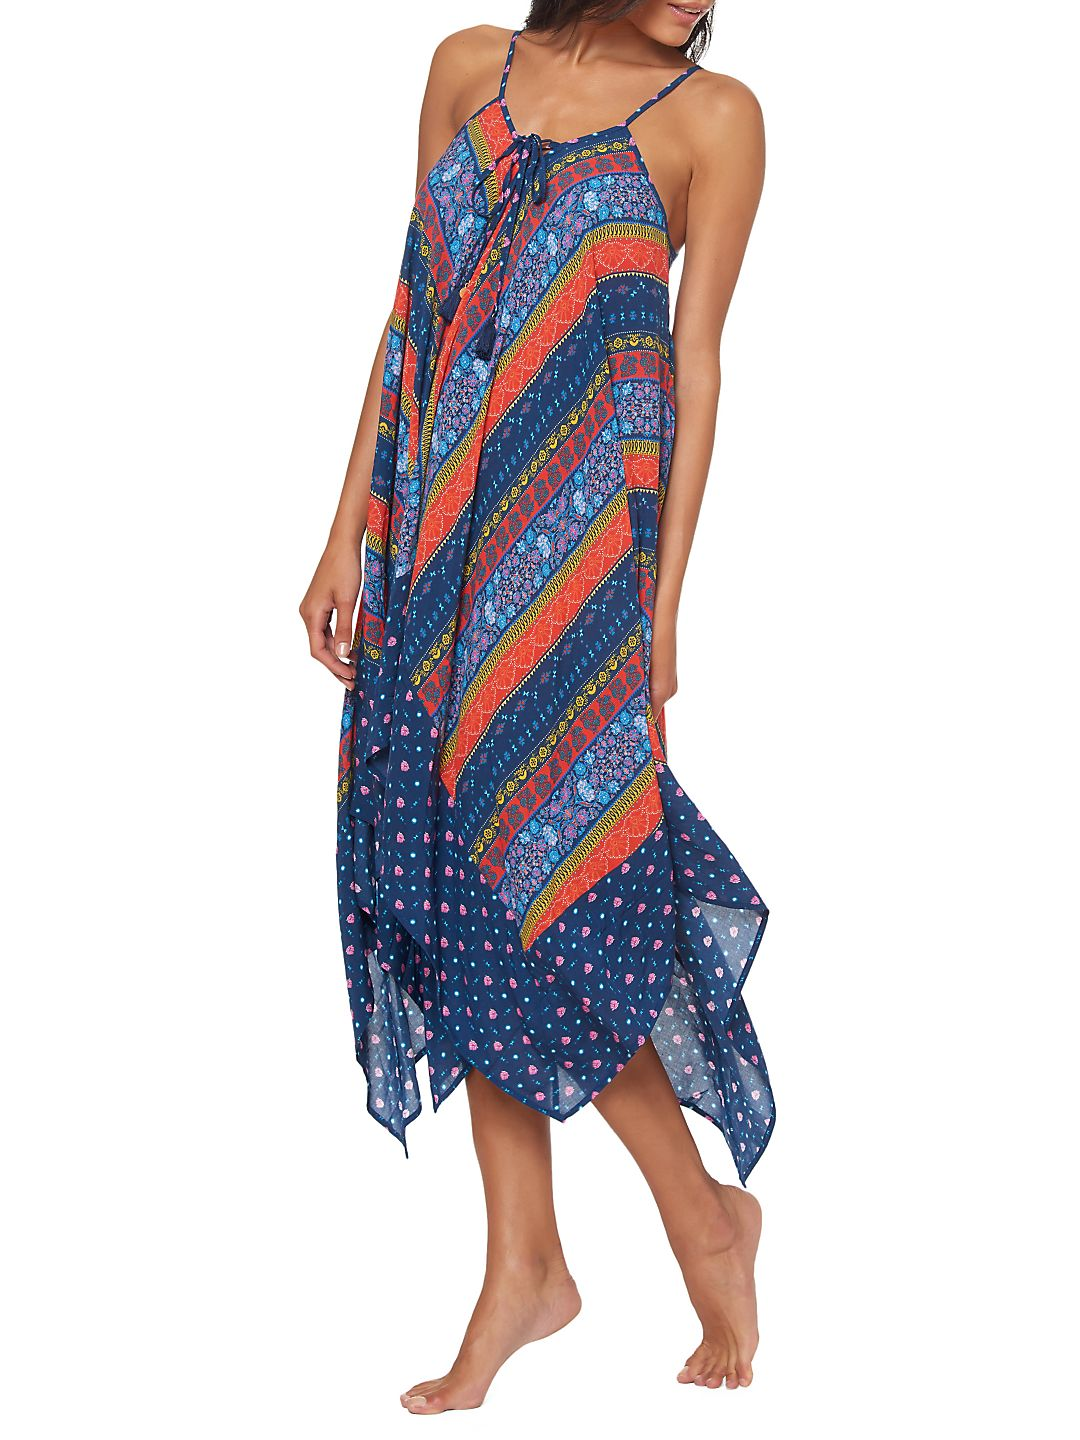 Classic Patterned Coverup